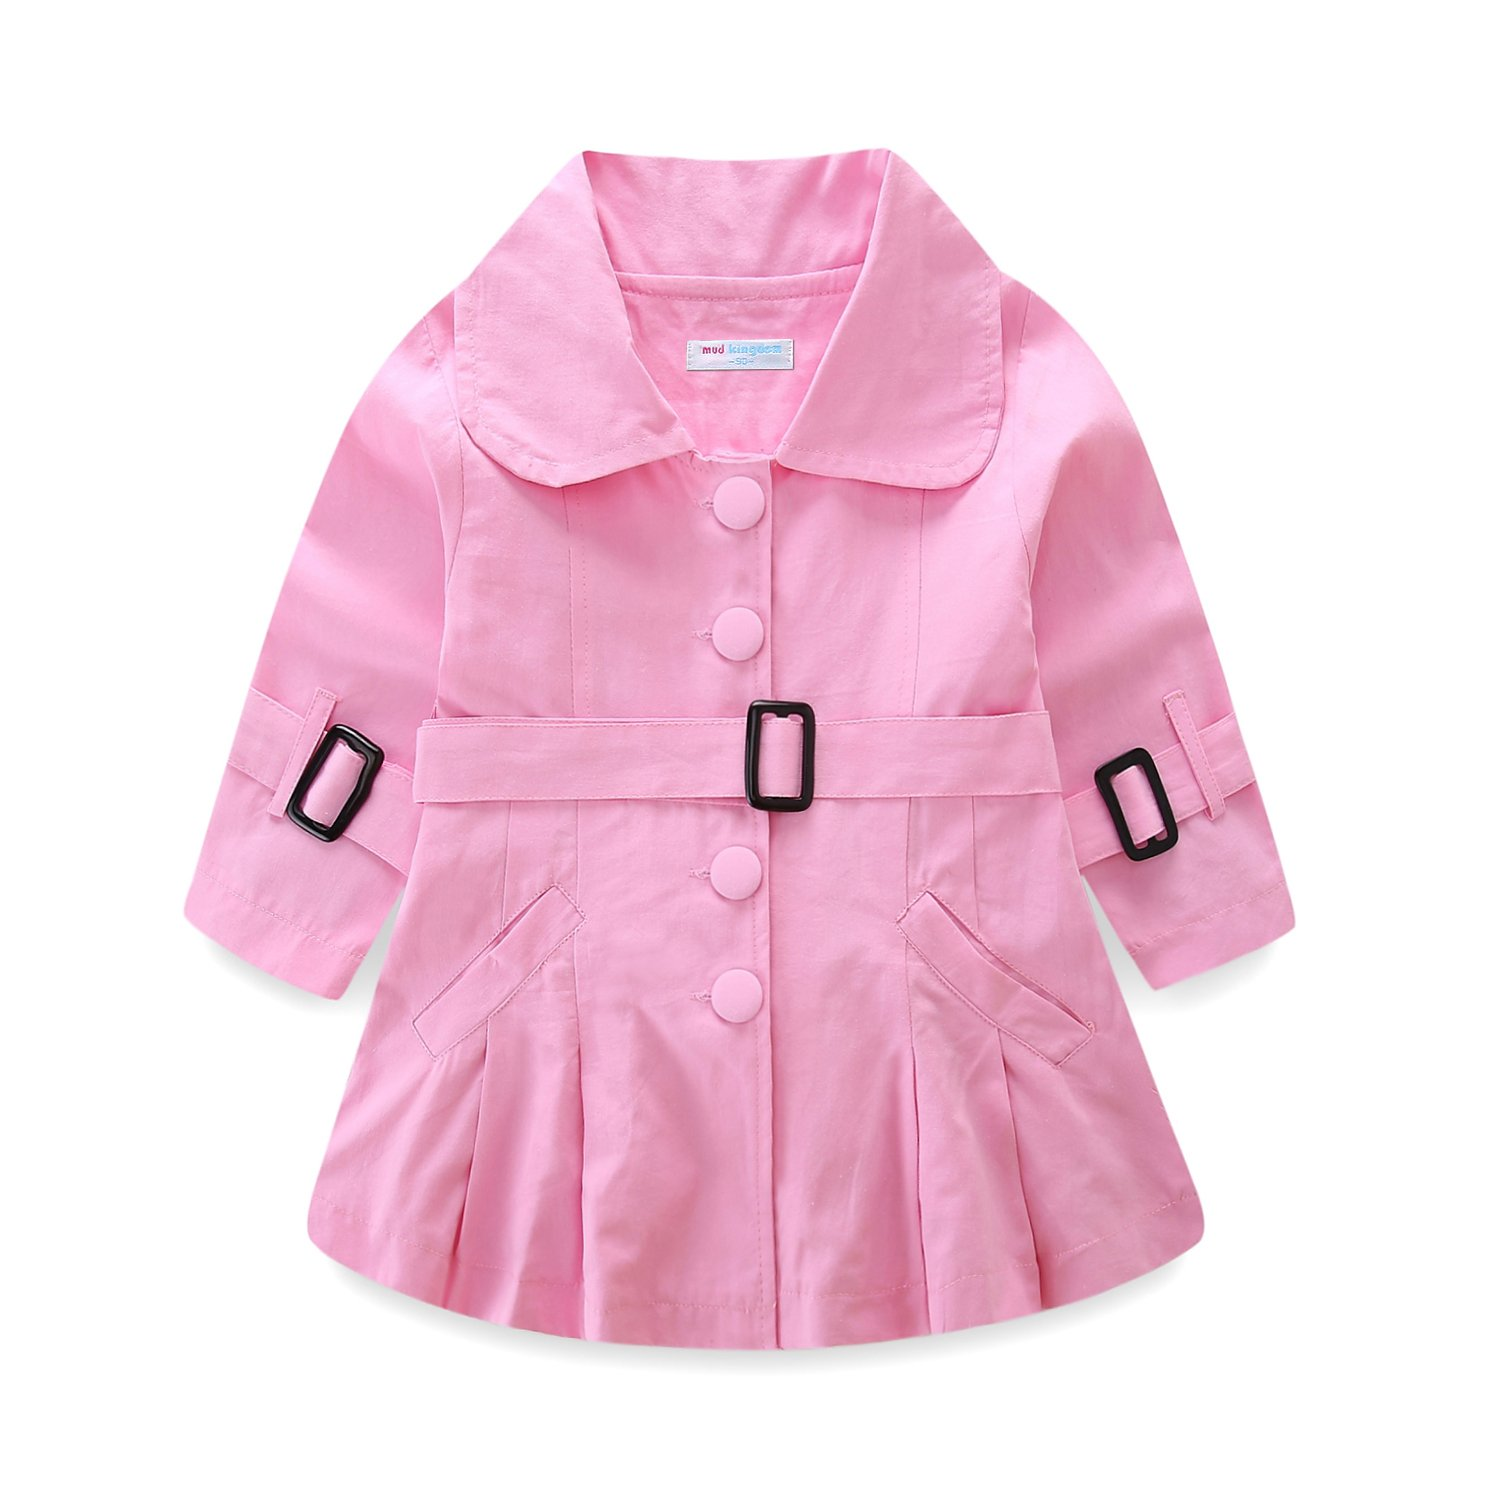 Mud Kingdom Girls Trench Coat Plain Jacket for Spring Fall ZS0096